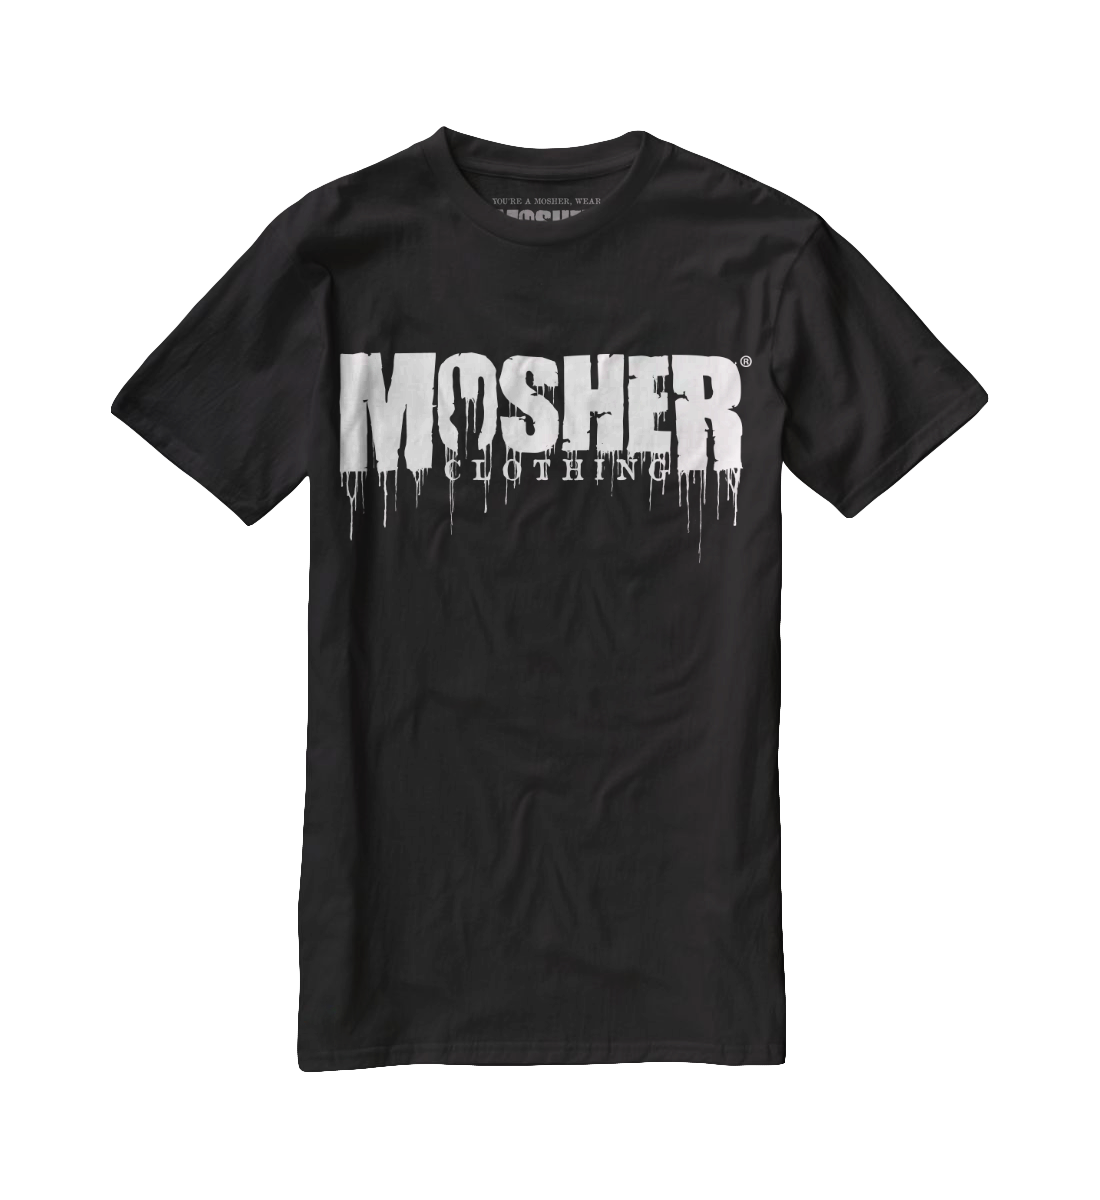 Scream Bloody Mosh t-shirt by Mosher Clothing